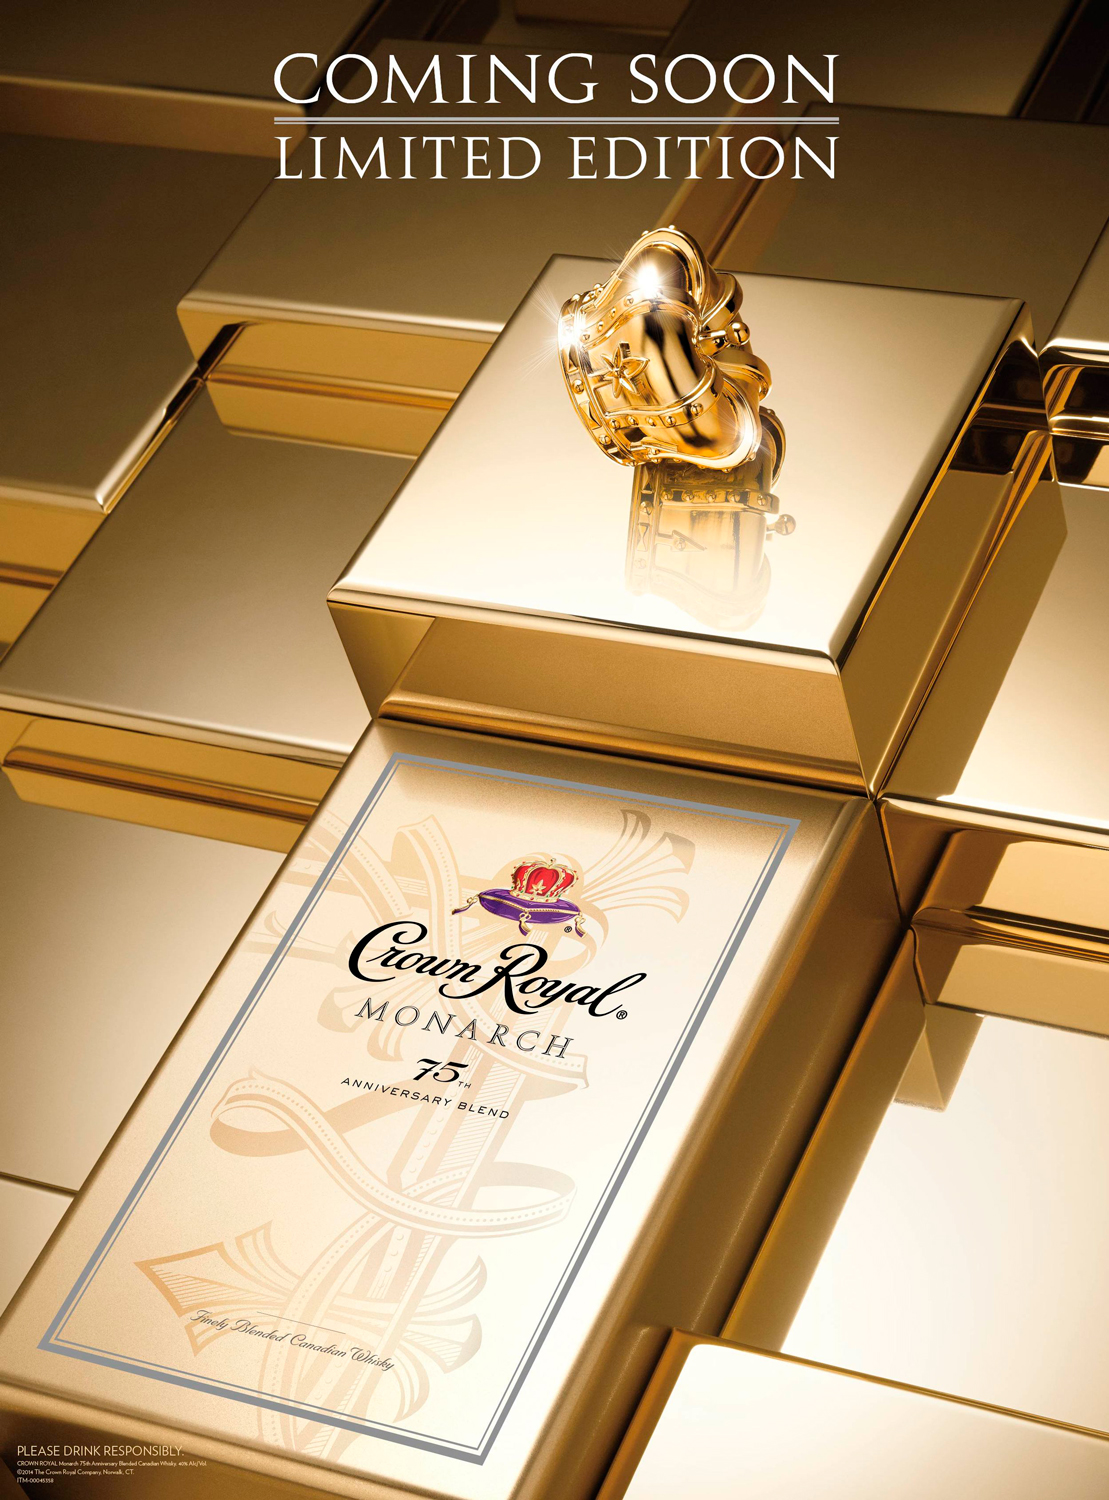 Coming Soon creative for Crown Royal 75th Anniversary